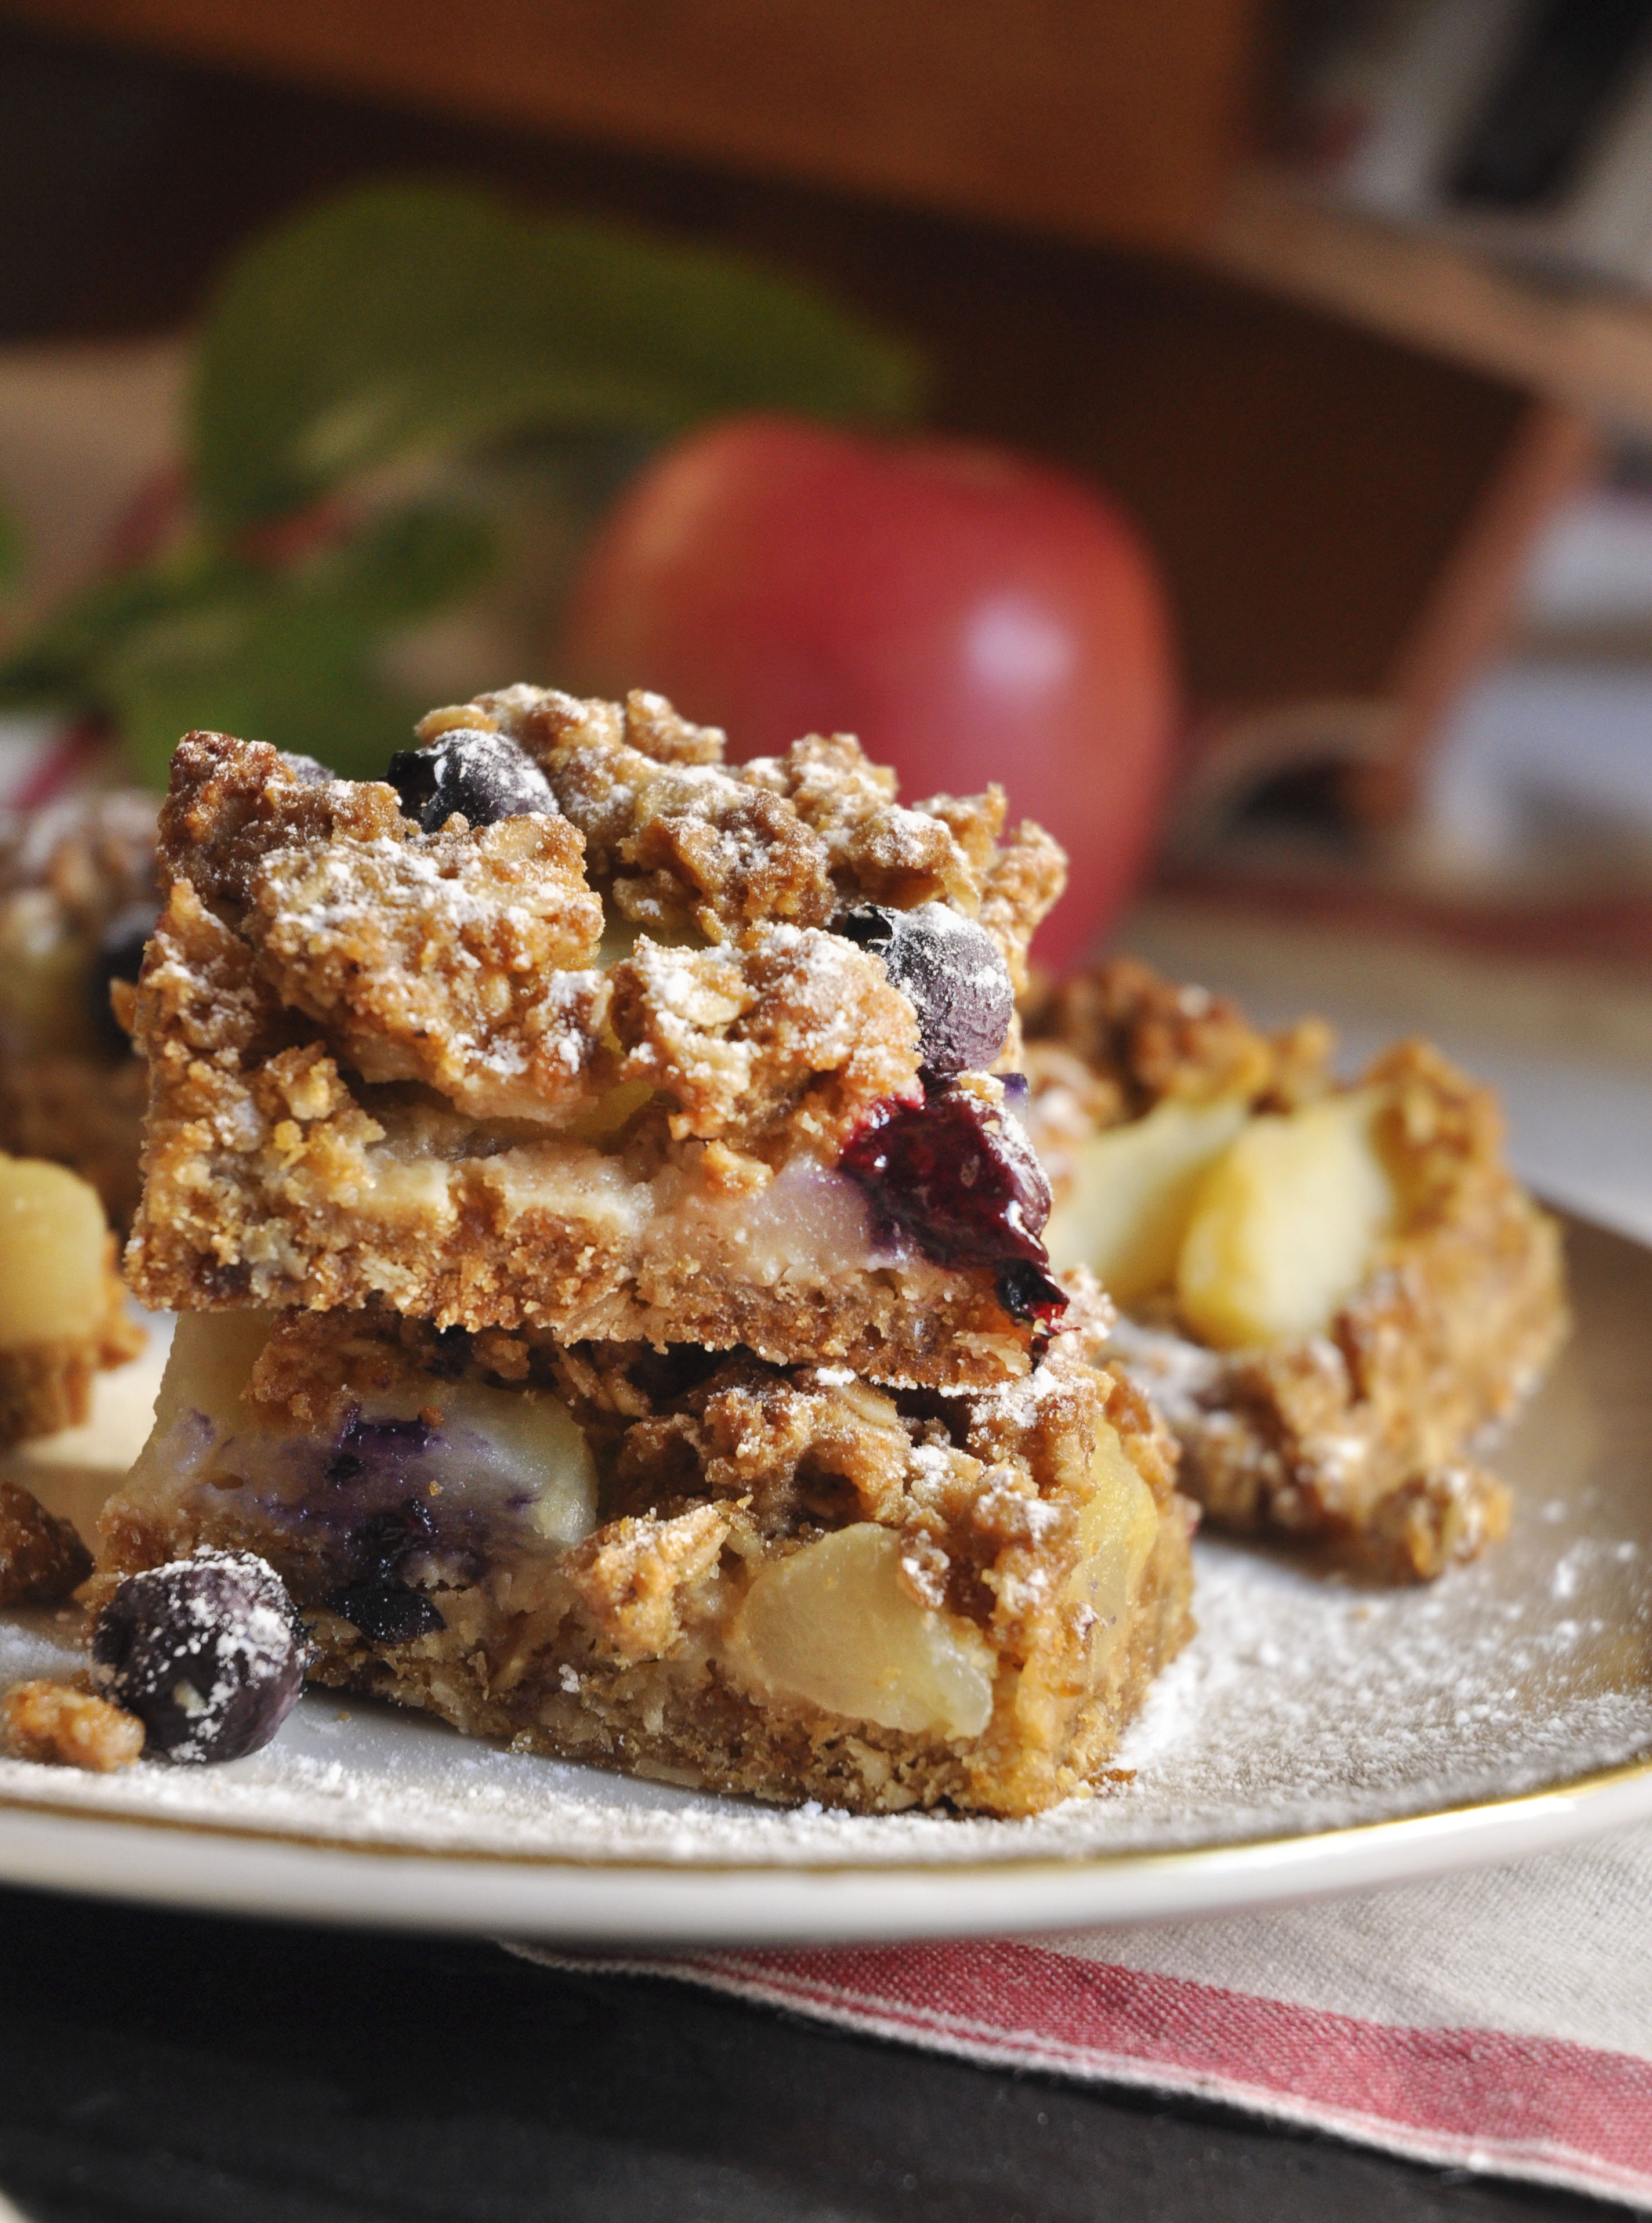 Apple and berry Slices